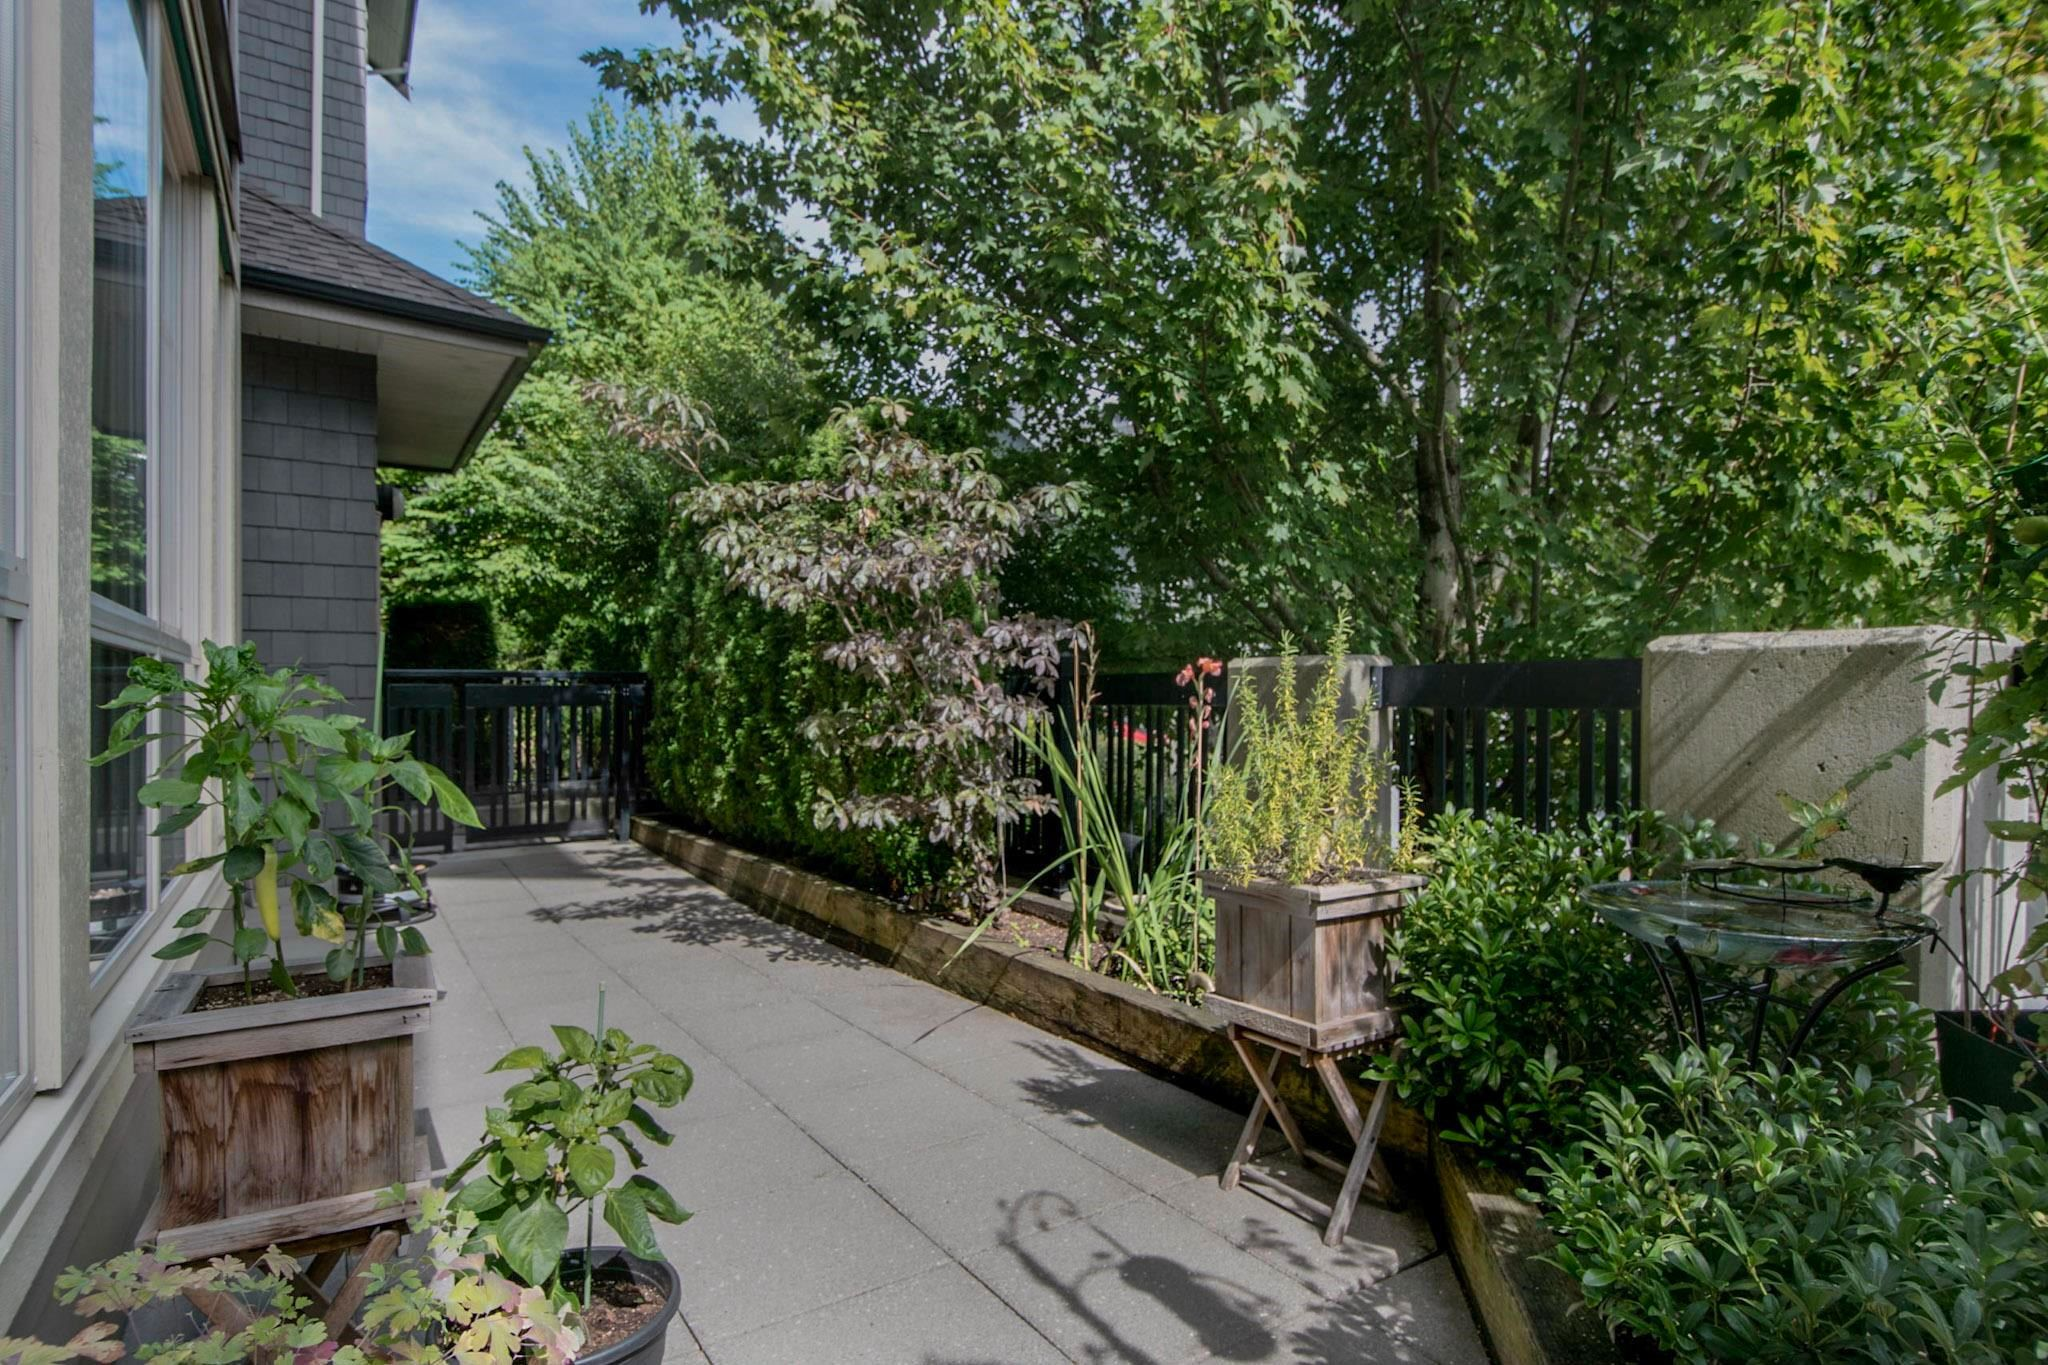 """Main Photo: 114 2969 WHISPER Way in Coquitlam: Westwood Plateau Condo for sale in """"Summerlin by Polygon"""" : MLS®# R2619335"""